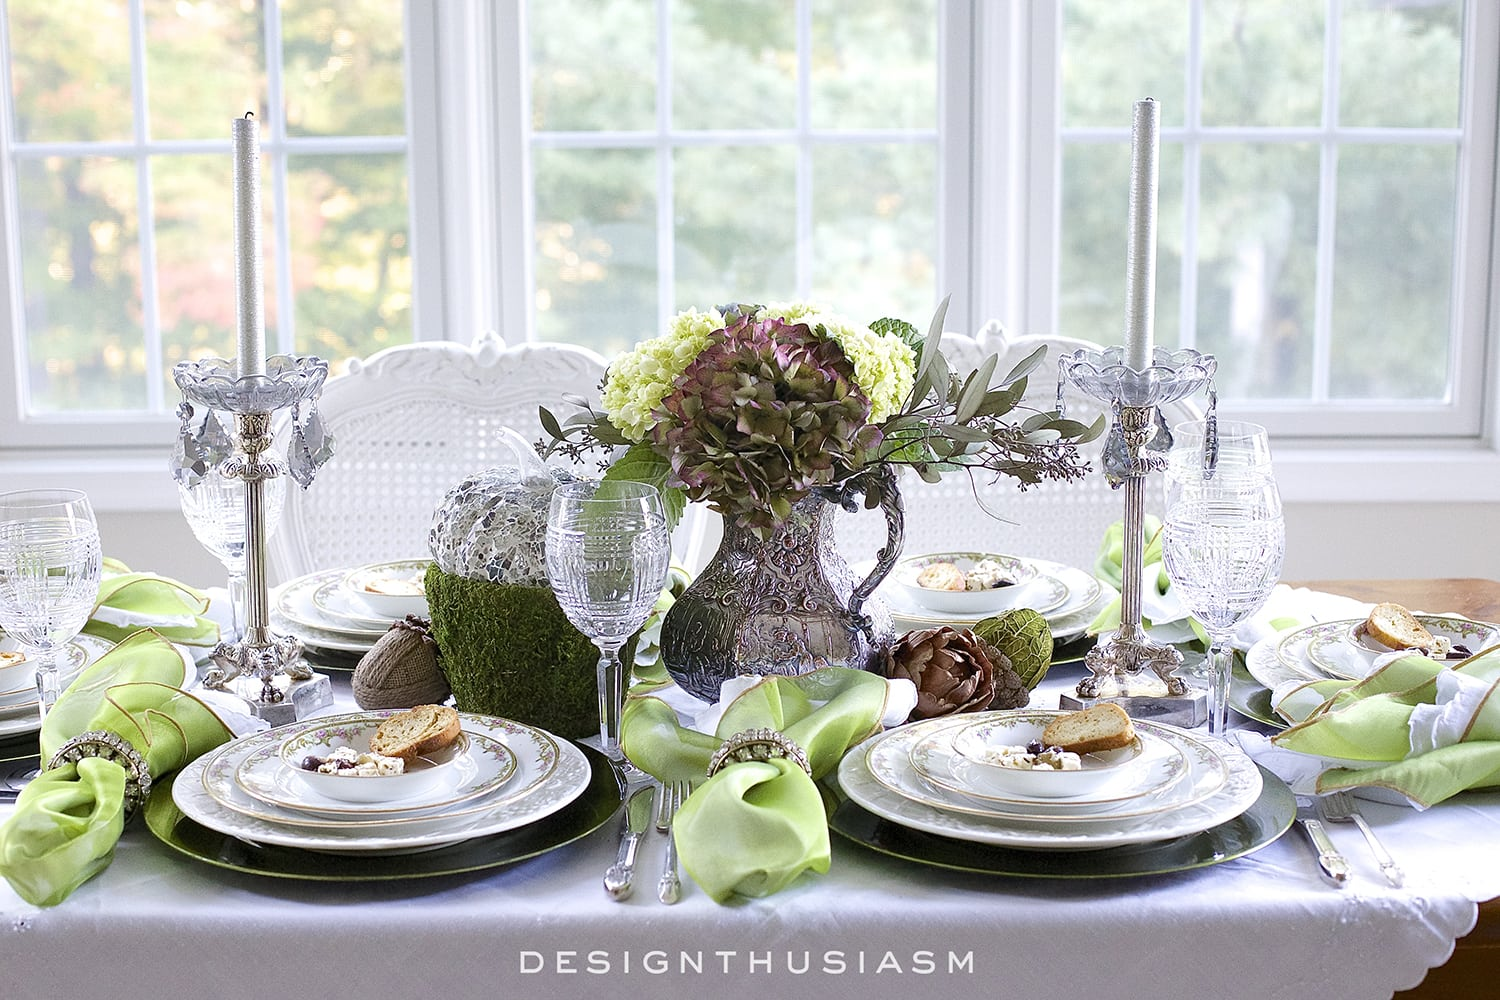 seasonal-tablescaping-with-designthusiasm-03